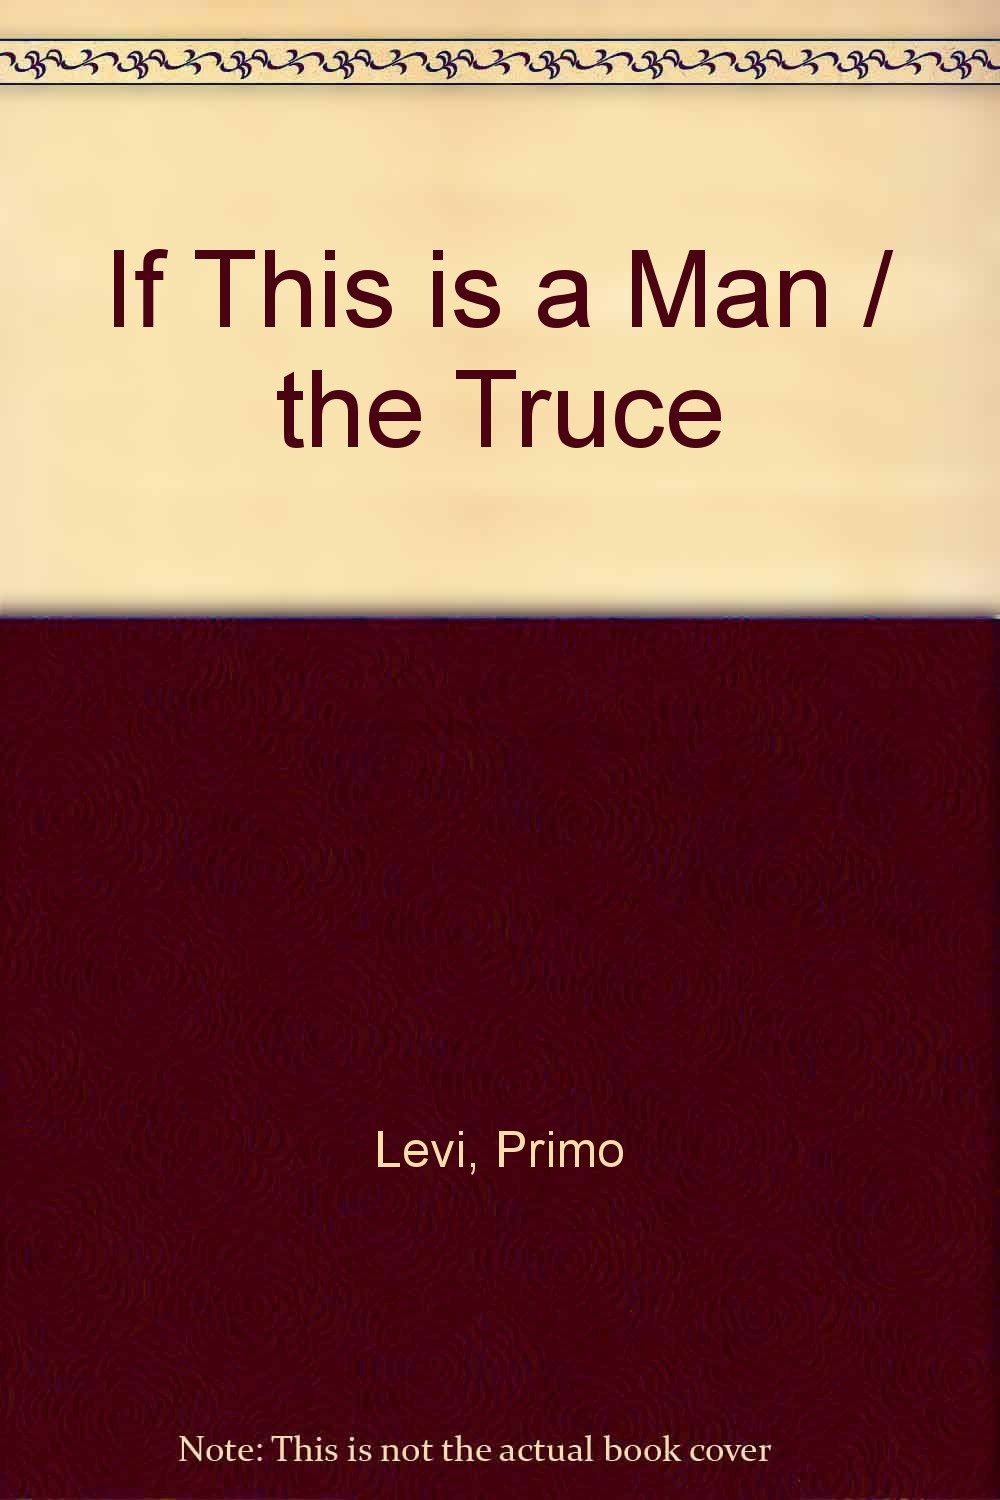 If this is a man the truce primo levi stuart woolf paul if this is a man the truce primo levi stuart woolf paul bailey 9780747411857 amazon books gamestrikefo Gallery